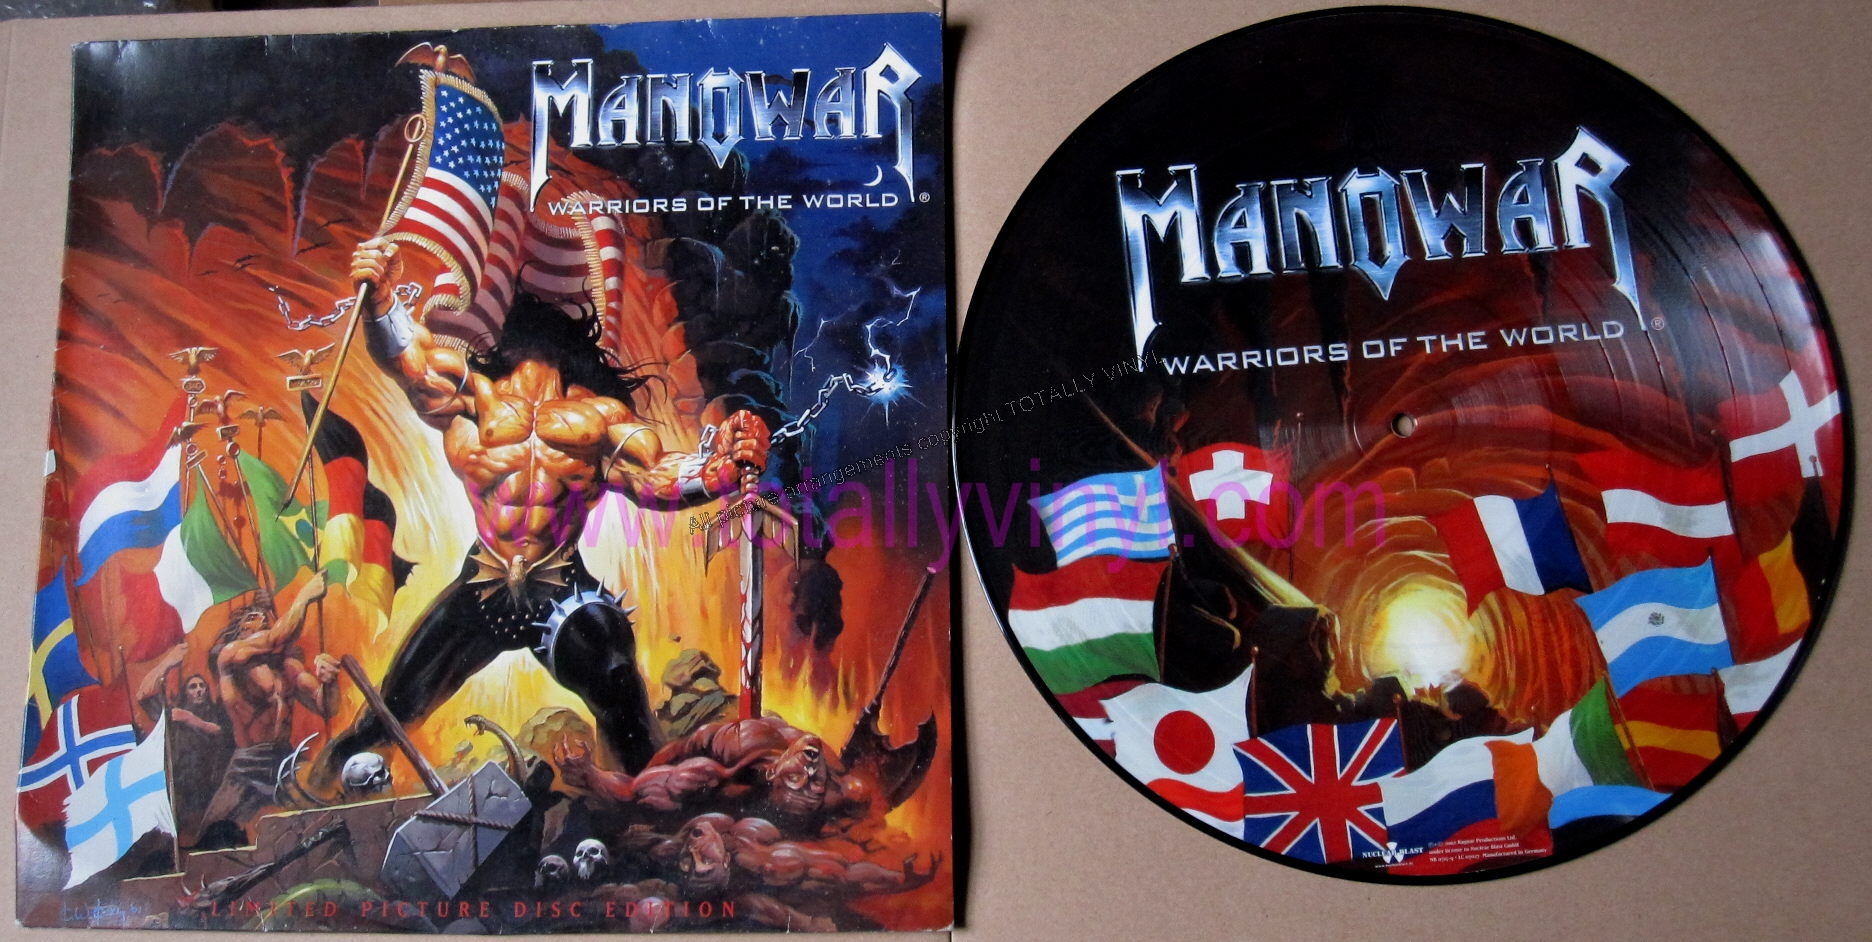 gods of war lyrics manowar: